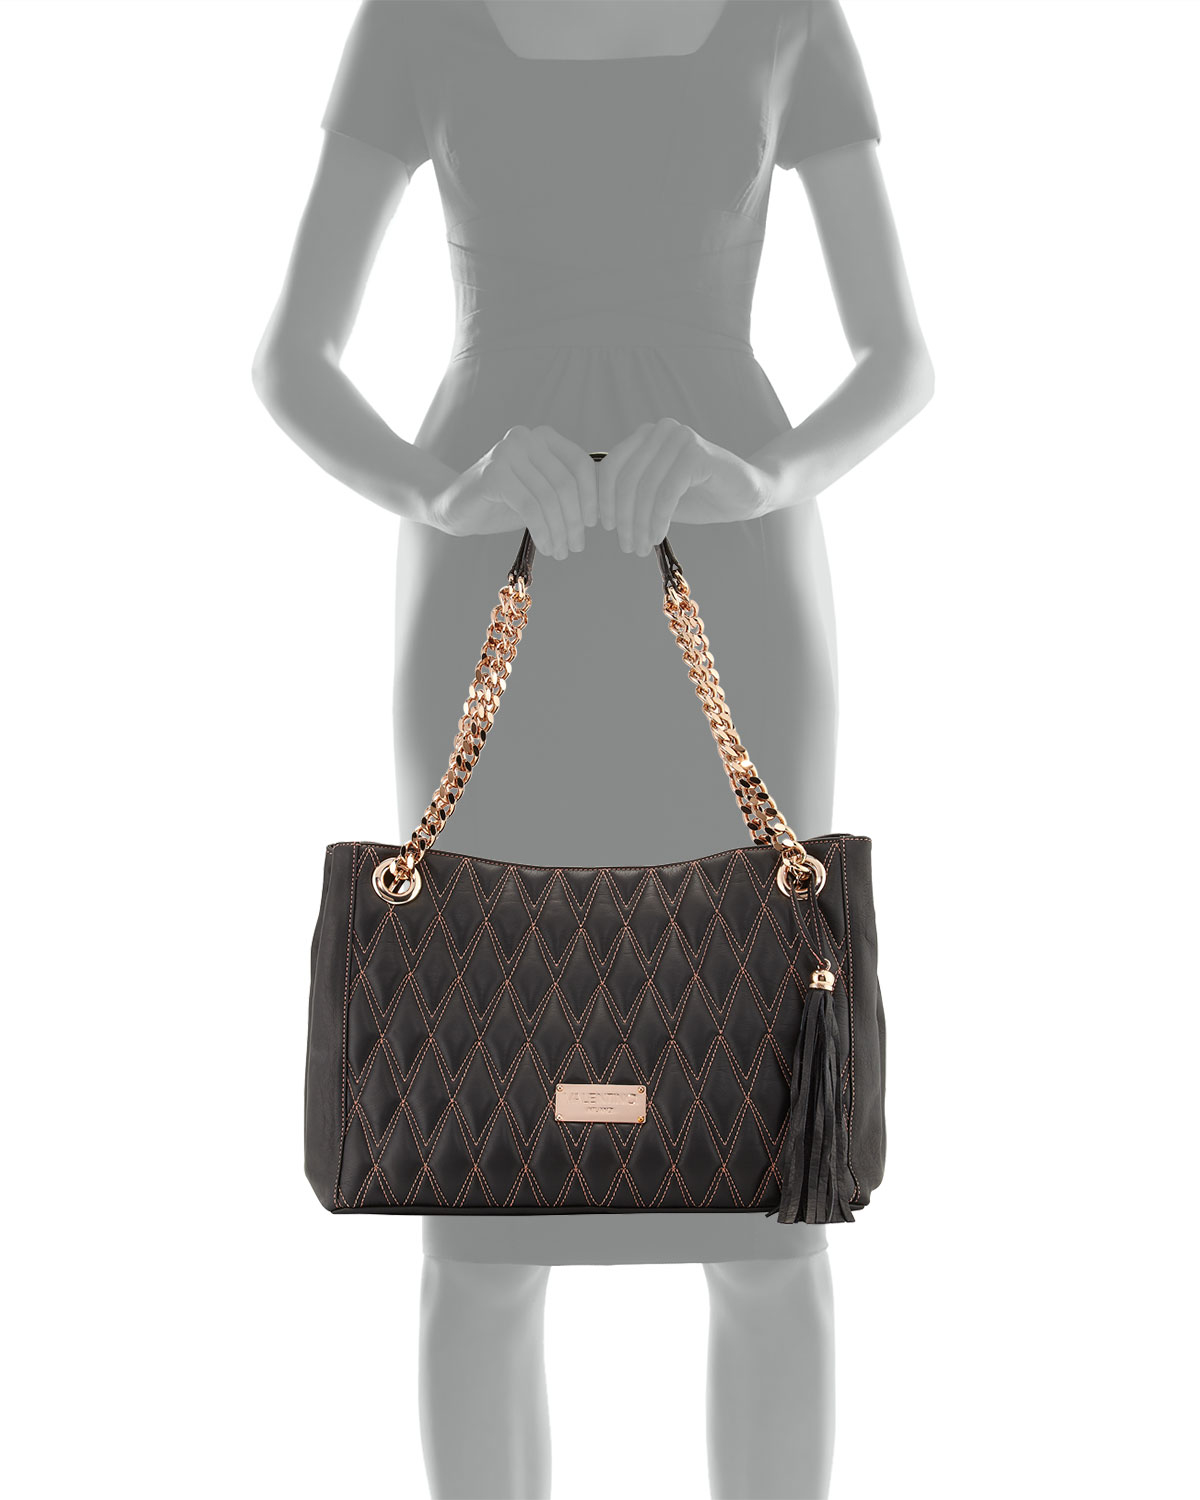 Lyst - Valentino by mario valentino Verra D Quilted Leather Tote ... : quilted black tote bag - Adamdwight.com